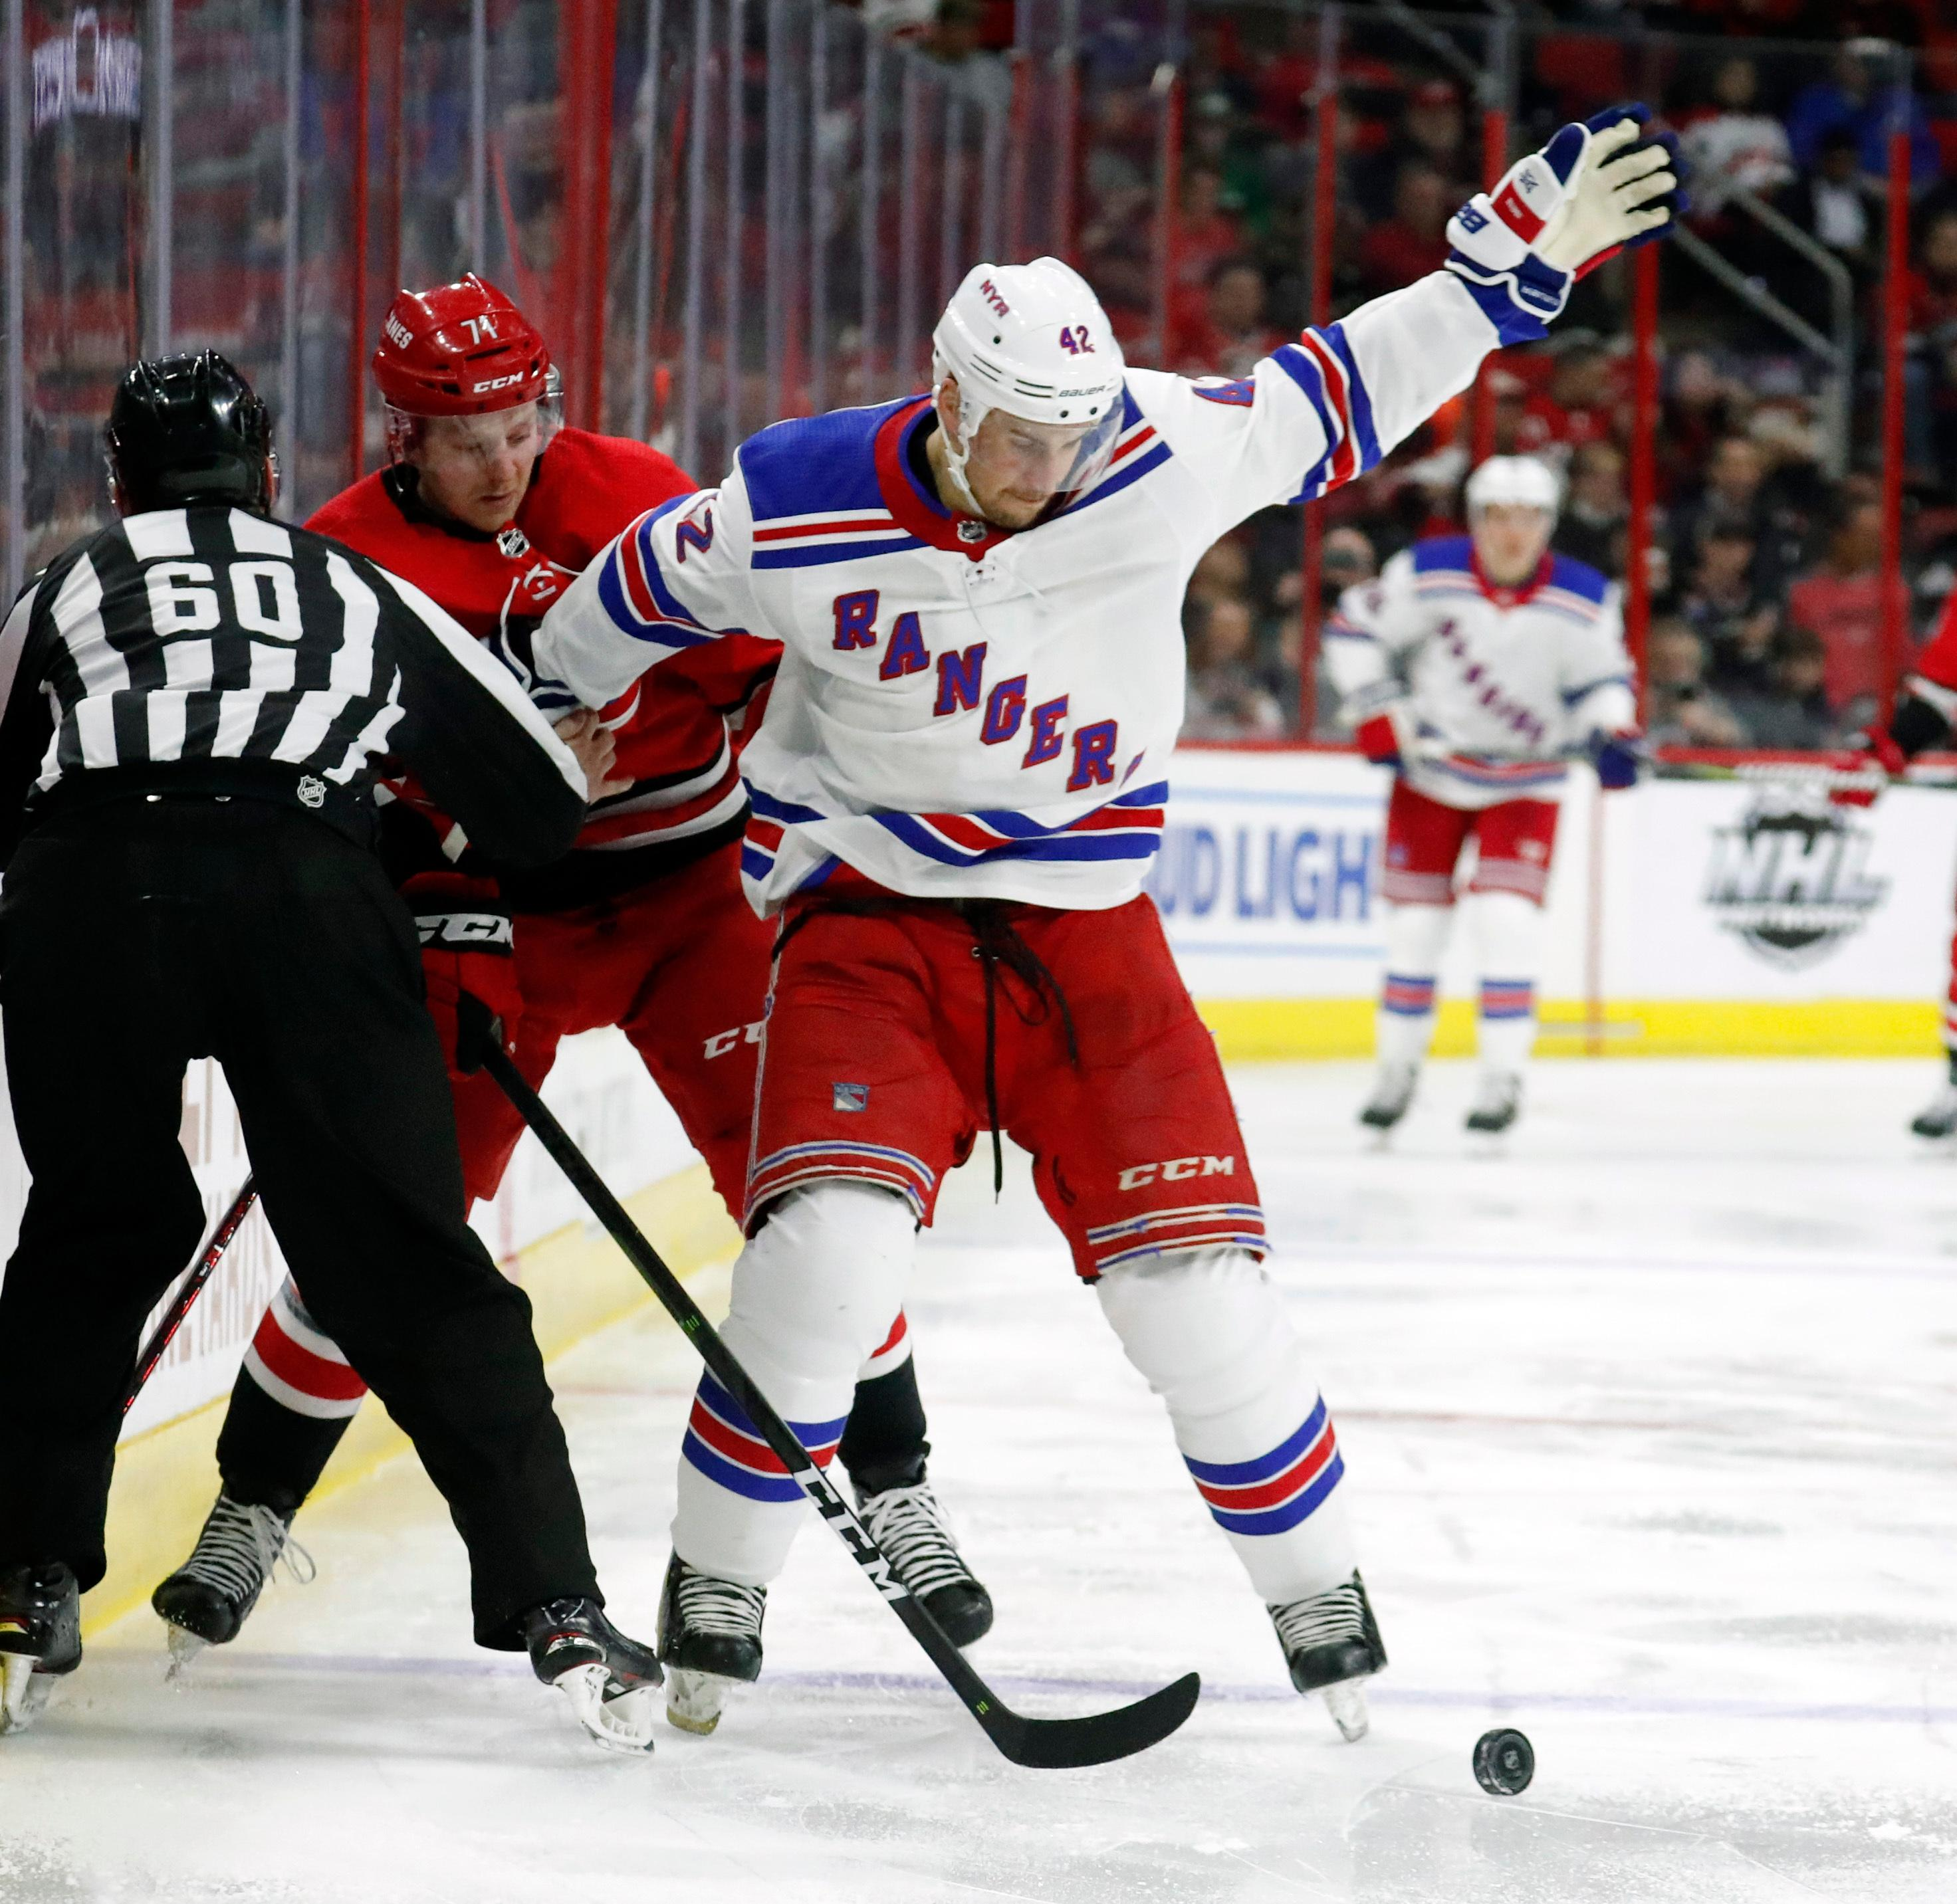 Carolina Hurricanes' Lucas Wallmark (71) of Sweden battles New York Rangers' Brendan Smith (42) during the second period of an NHL hockey game in Raleigh, N.C., Tuesday, Feb. 19, 2019. (AP Photo/Chris Seward)